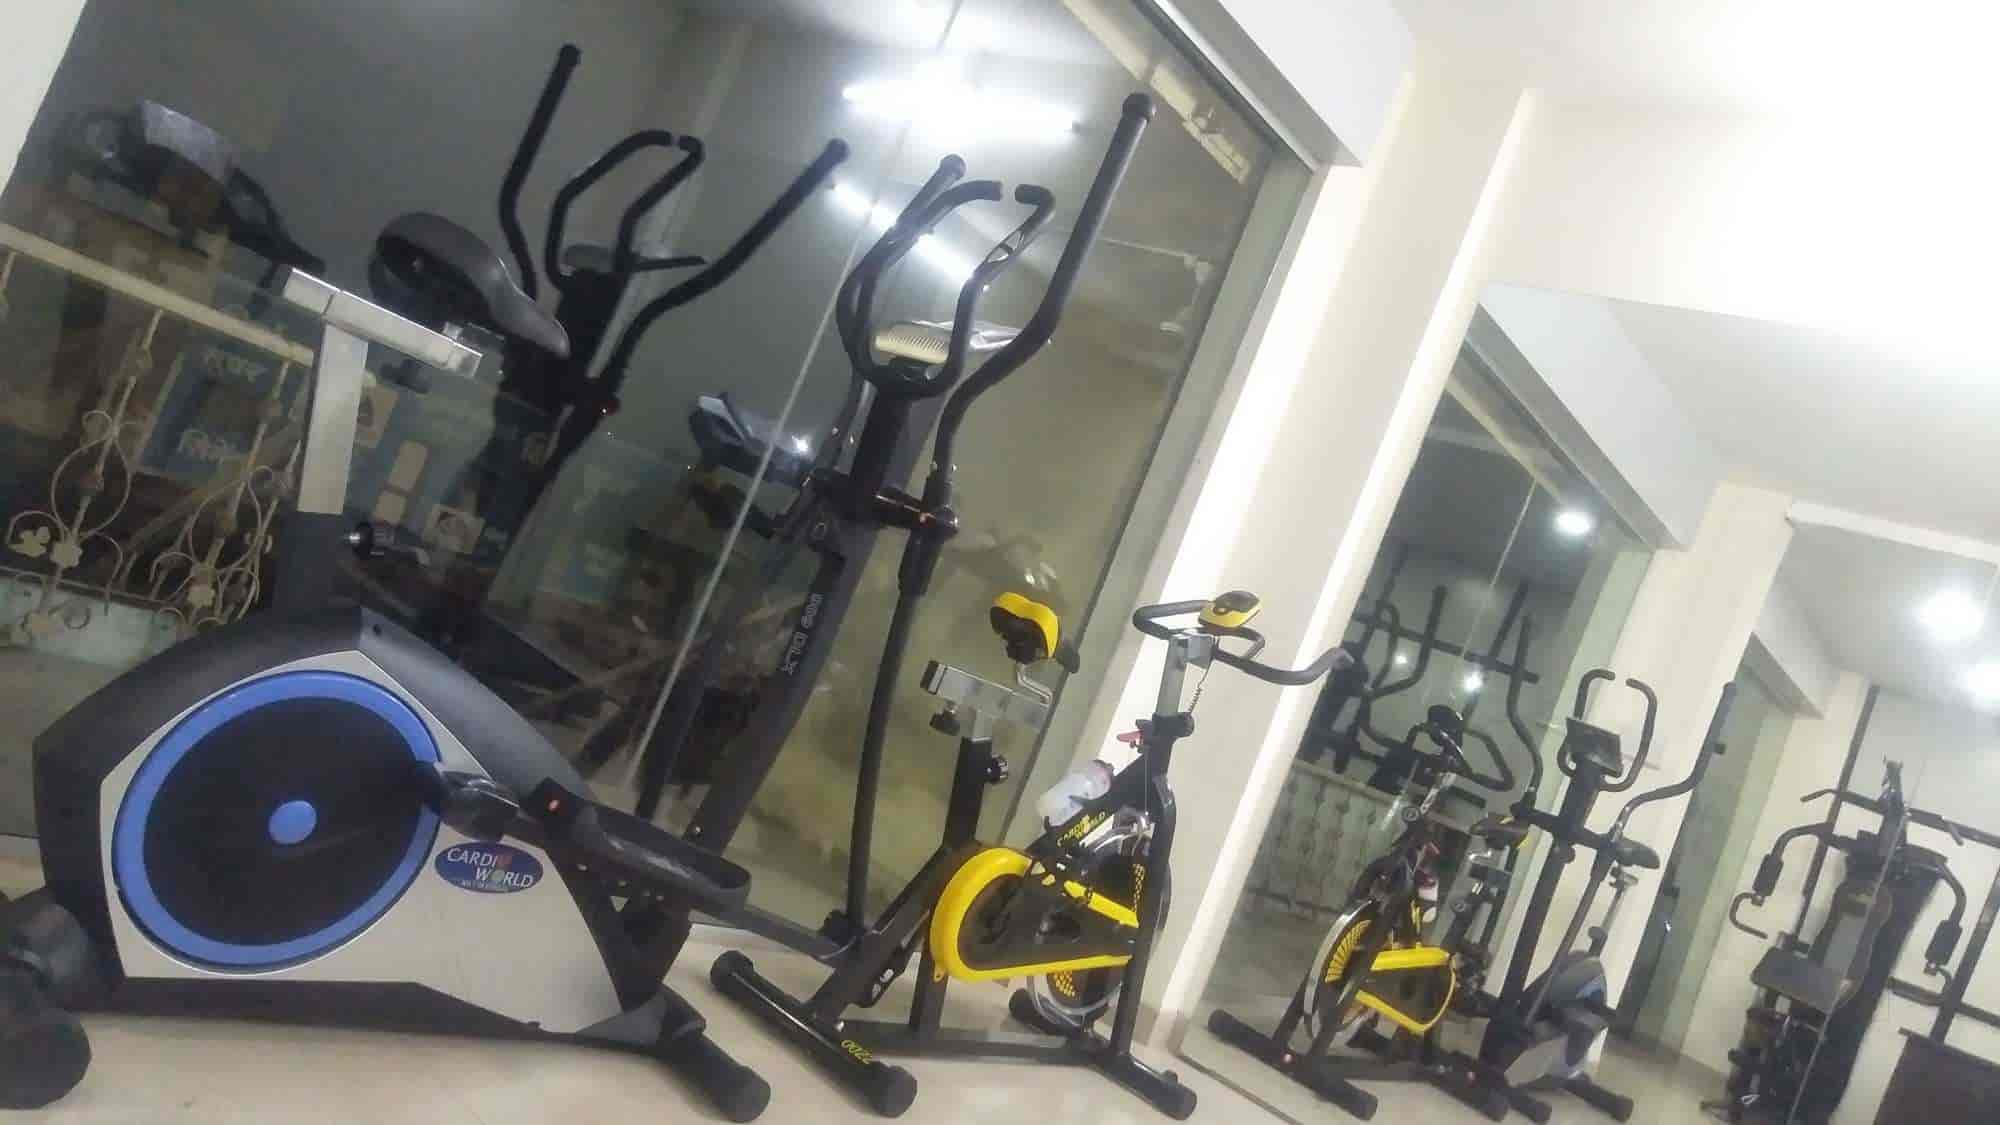 Jk home fitness gymnasium equipment dealers in baramati justdial